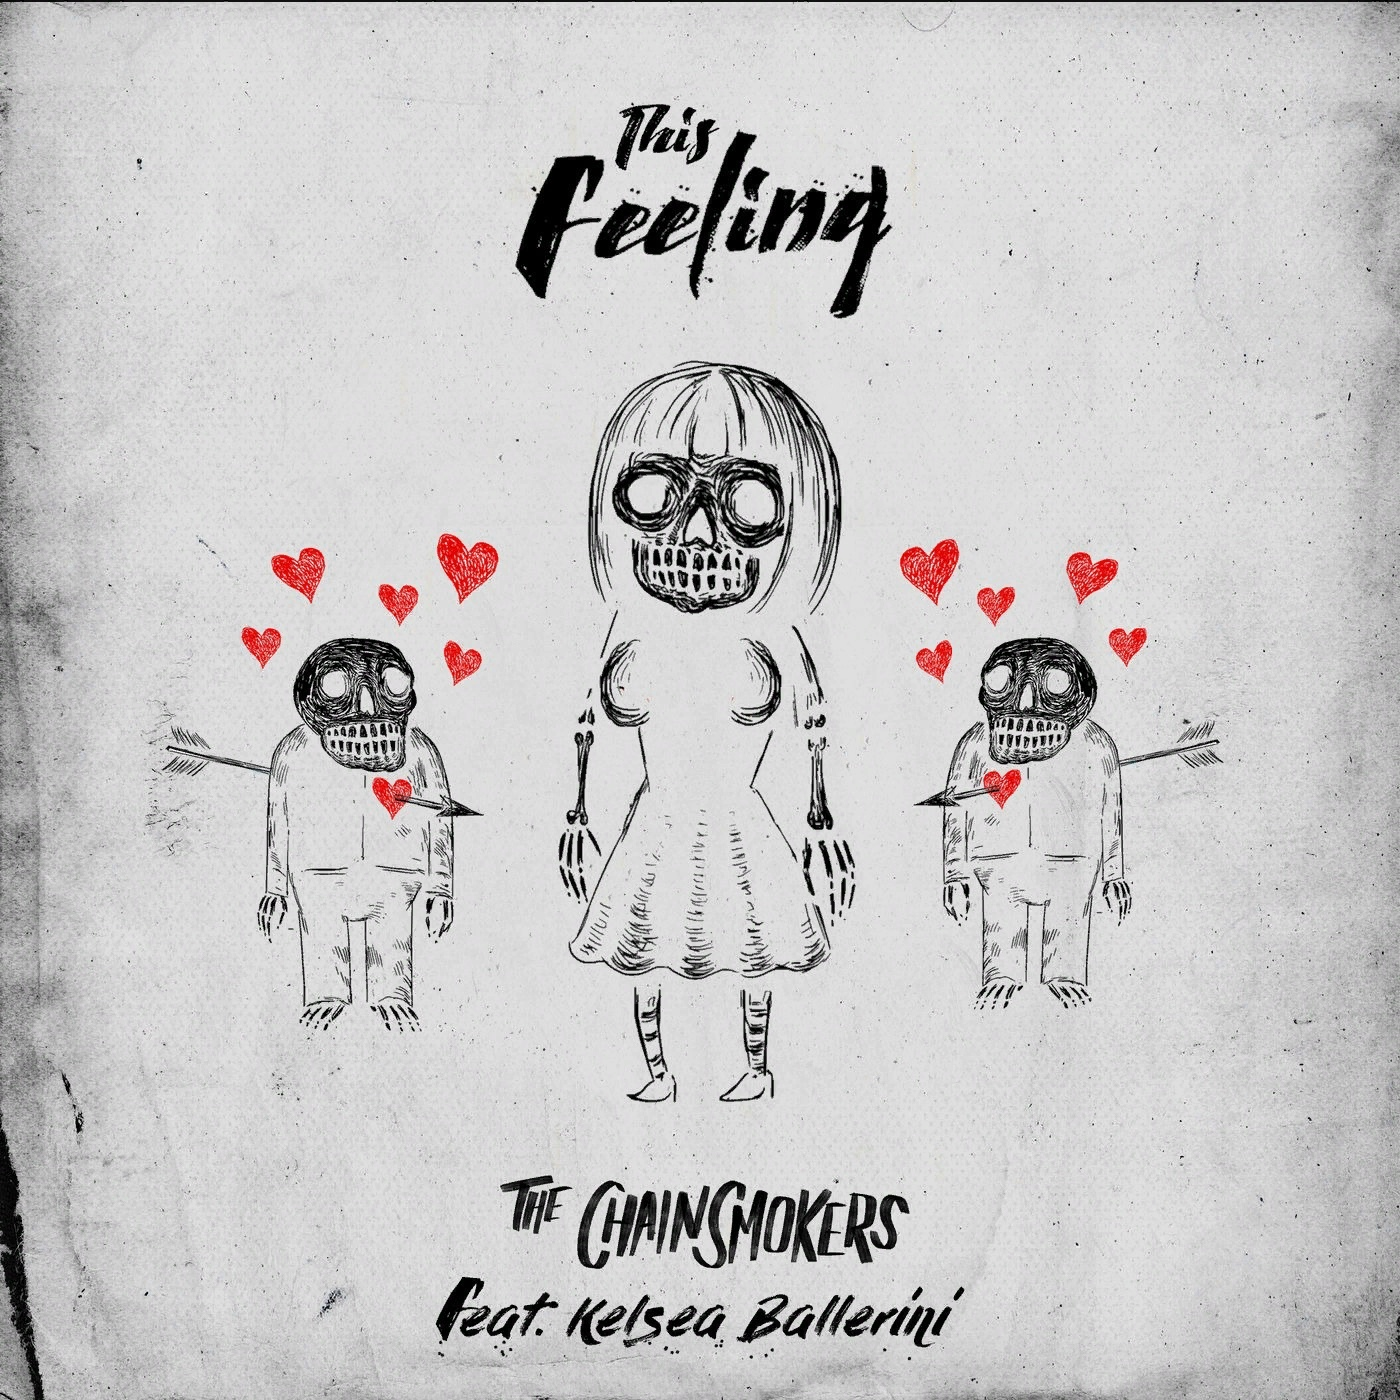 The Chainsmokers – Sick Boy...This Feeling